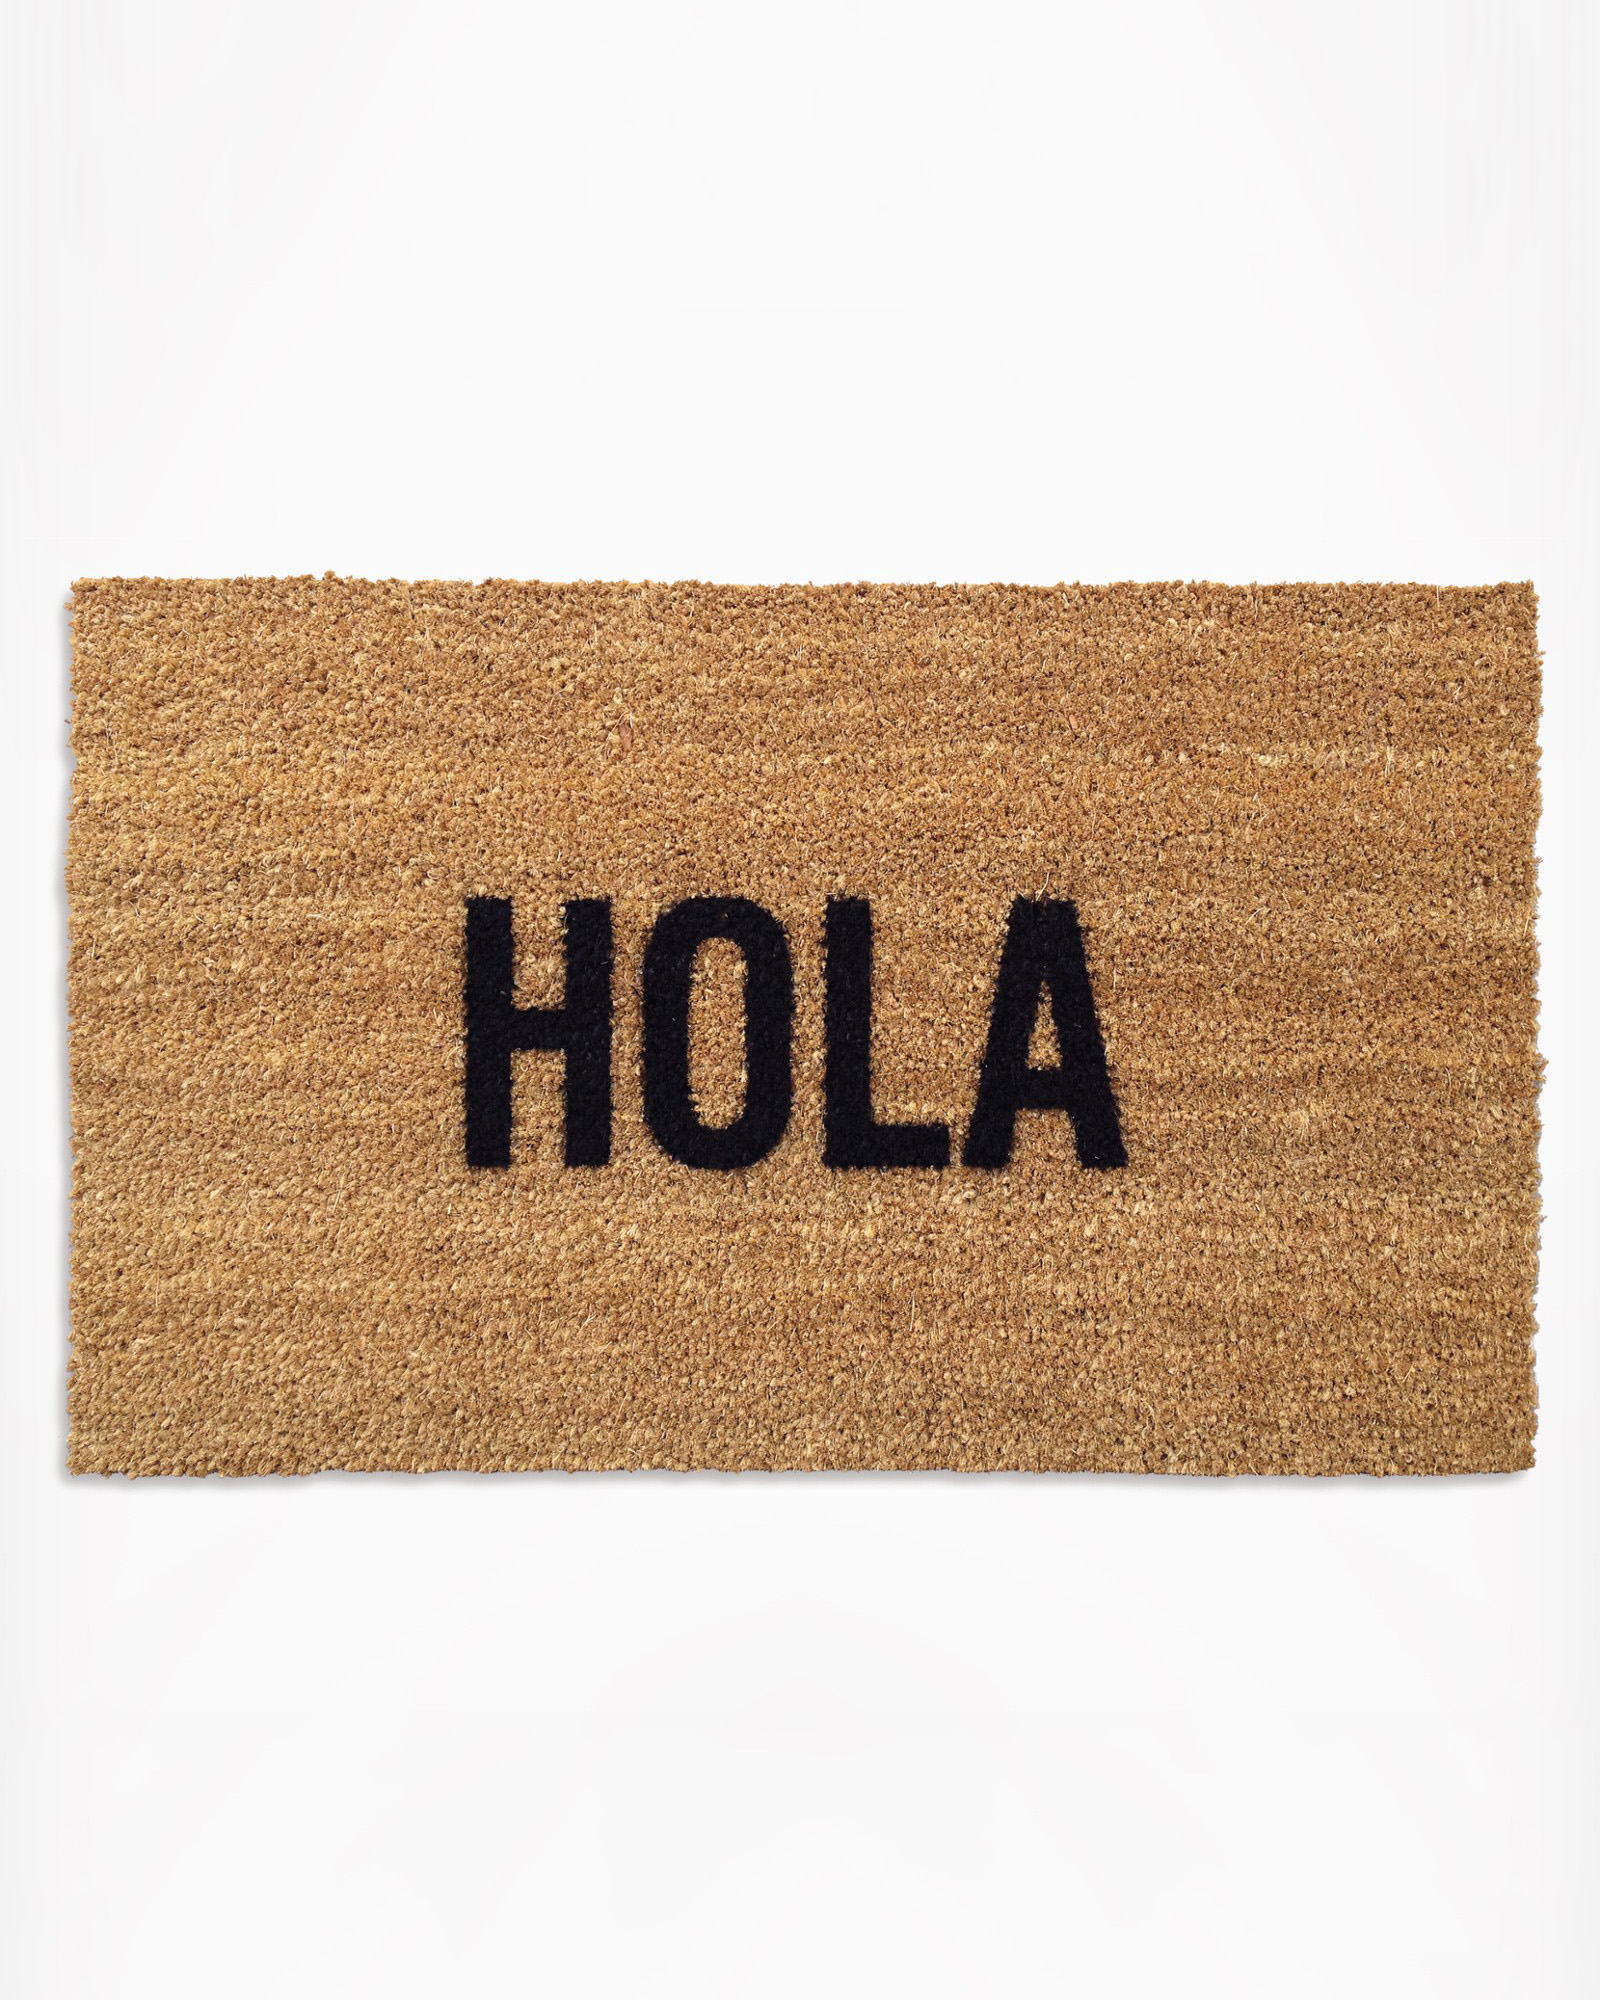 morning registry items reed wilson design hola doormat